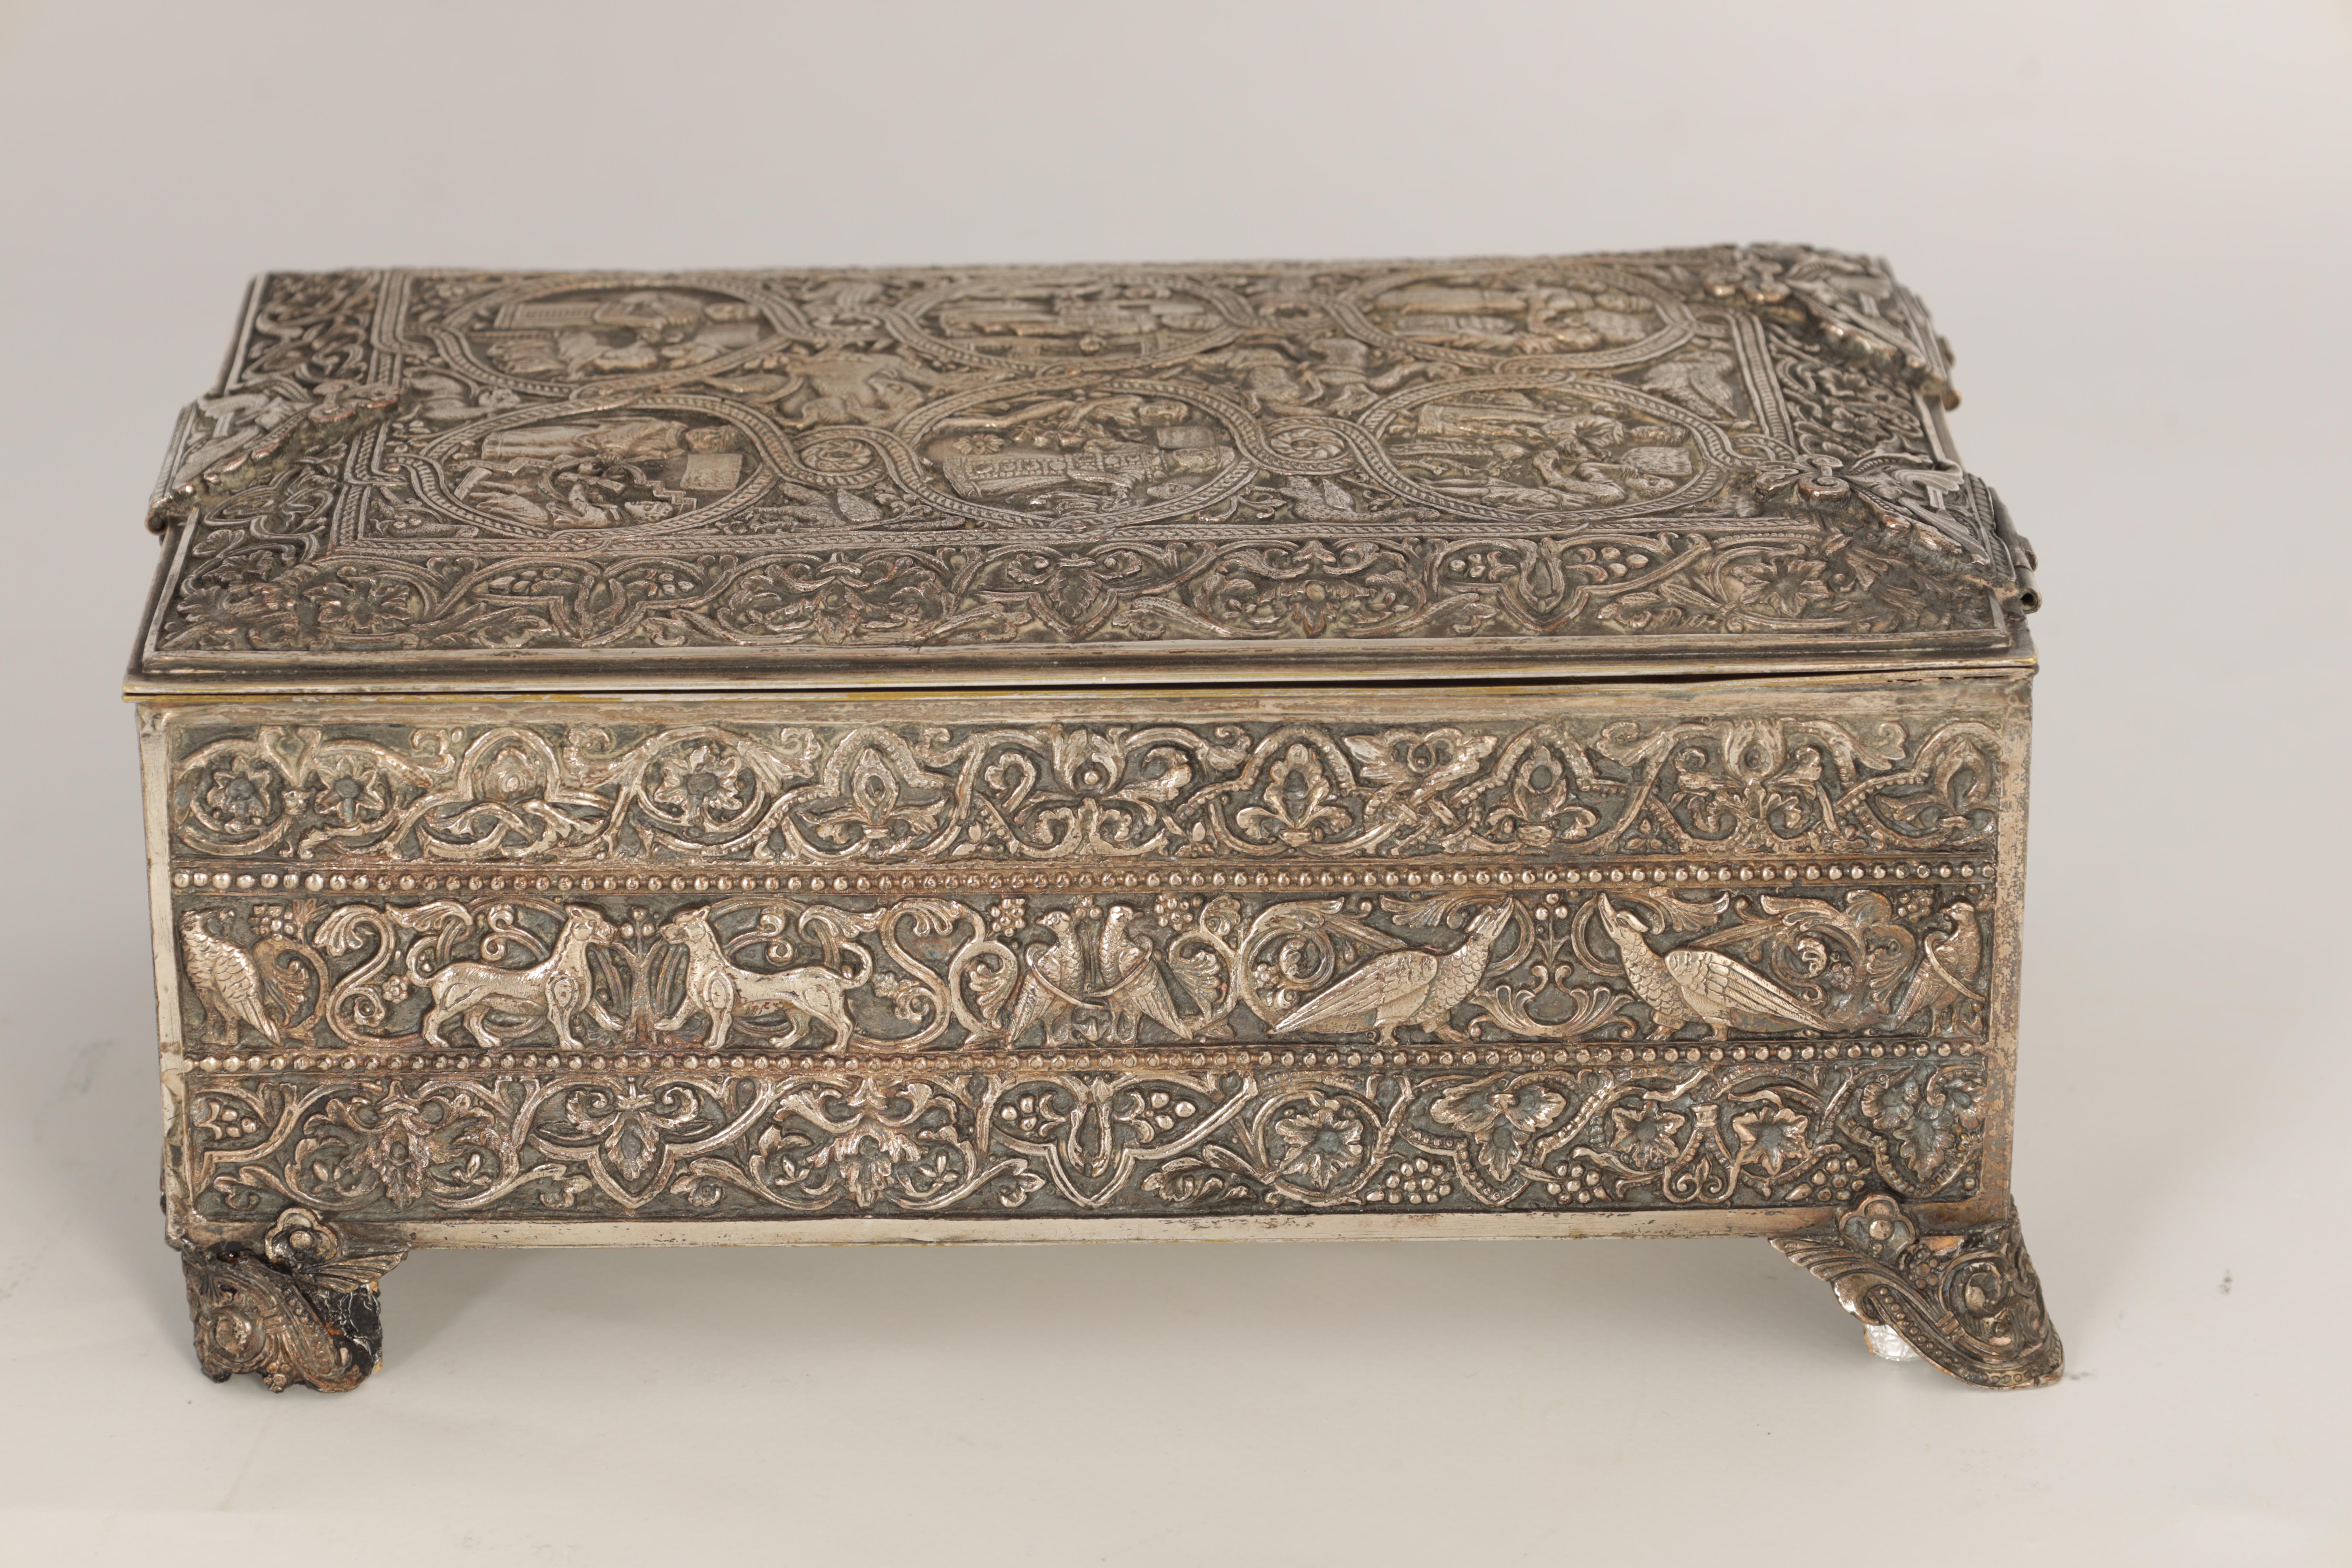 A 19TH CENTURY SILVERED BRONZE JEWELLERY CASKET the lid with intricate relief groups of birds, - Image 8 of 12